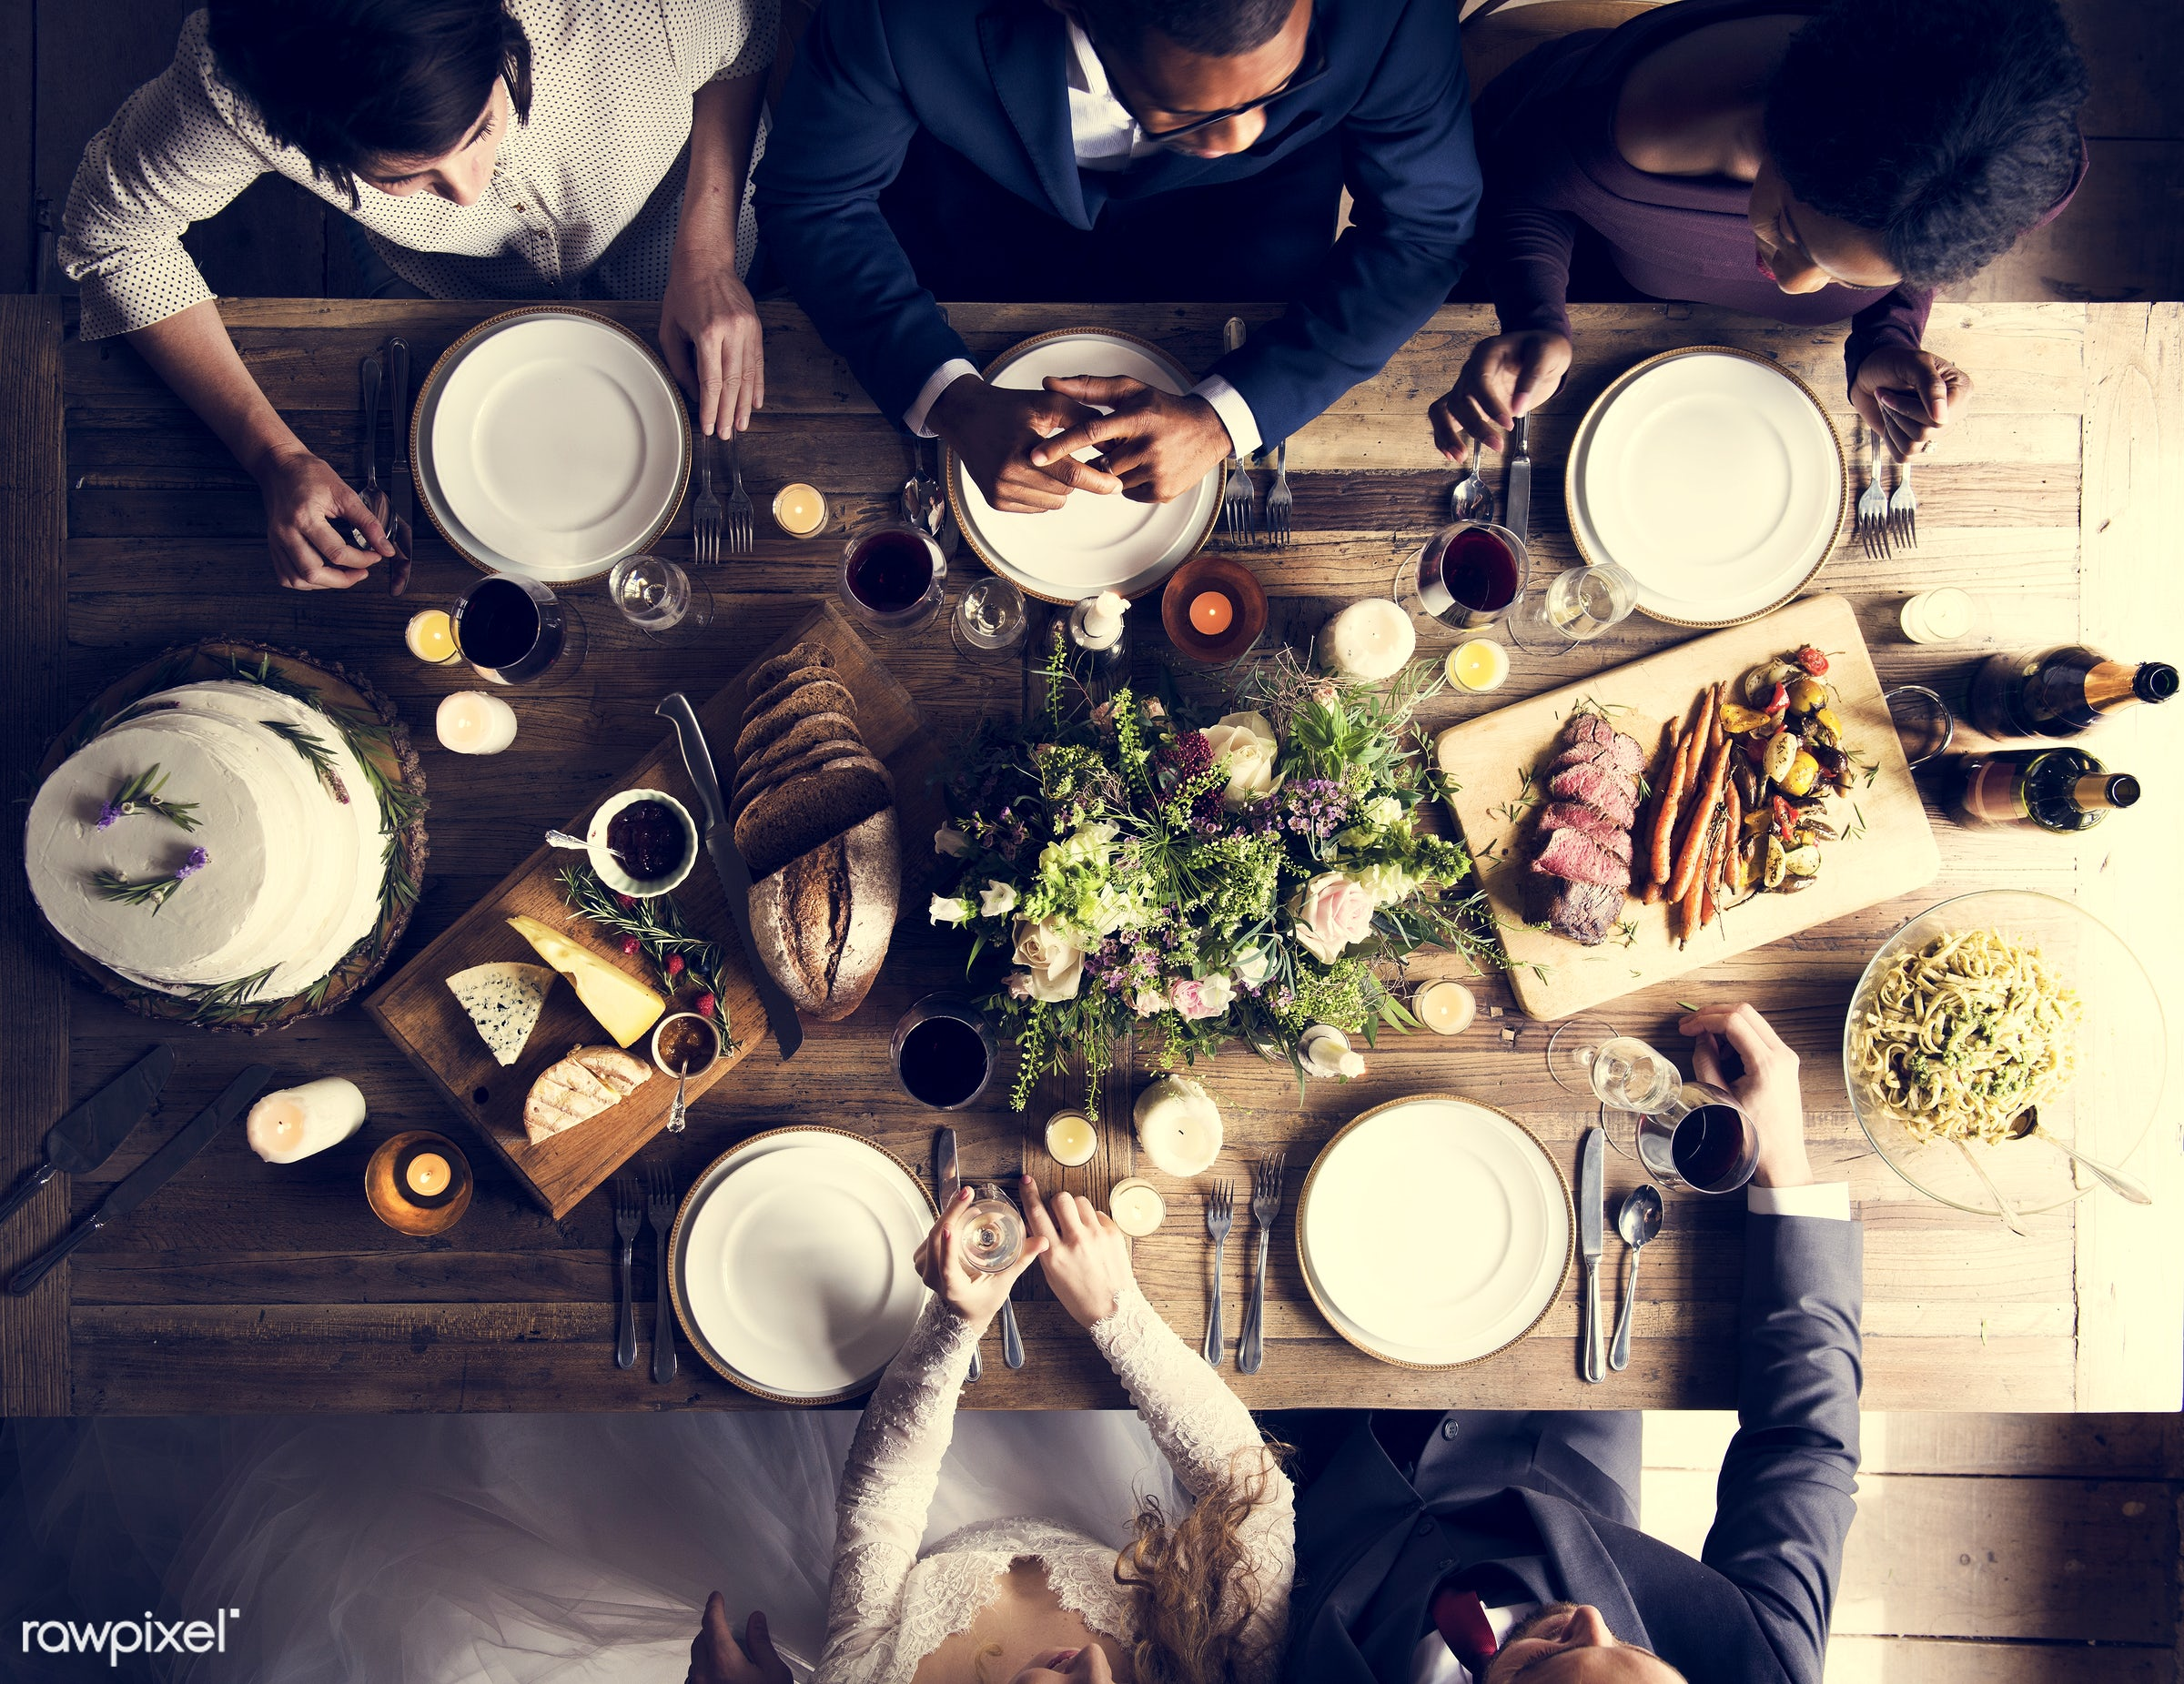 person, cuisine, bonding, husband, people, love, sharing, event, woman, couple, cheers, bride, aerial view, soulmate, man,...